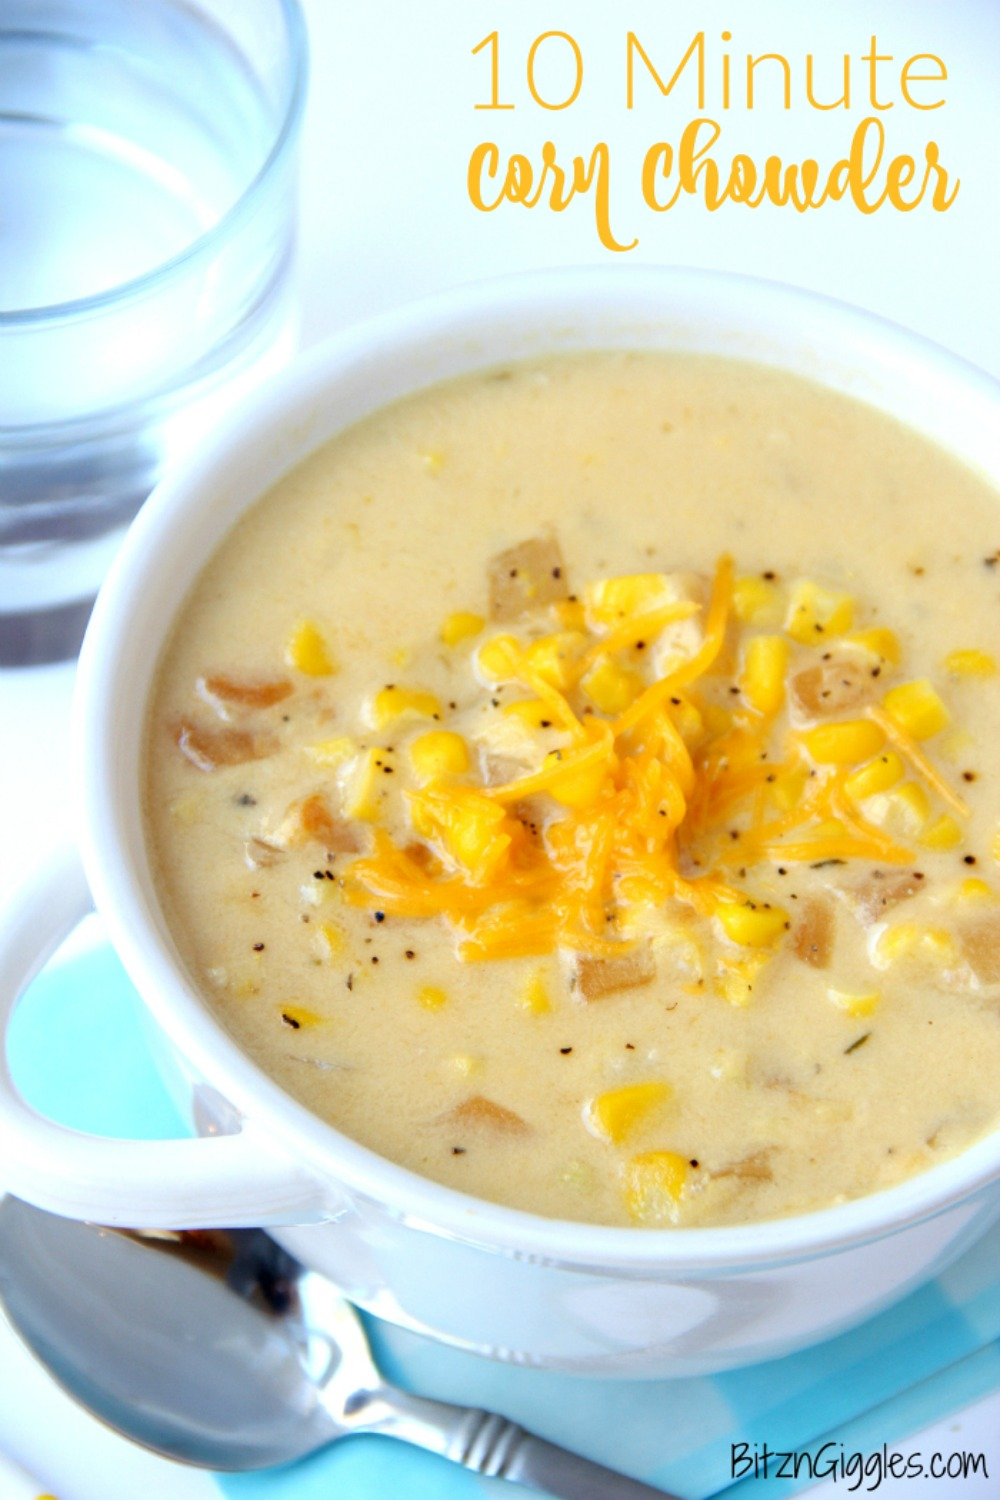 10 Minute Corn Chowder – A delicious, creamy chowder with simple ingredients that comes together in a matter of minutes!